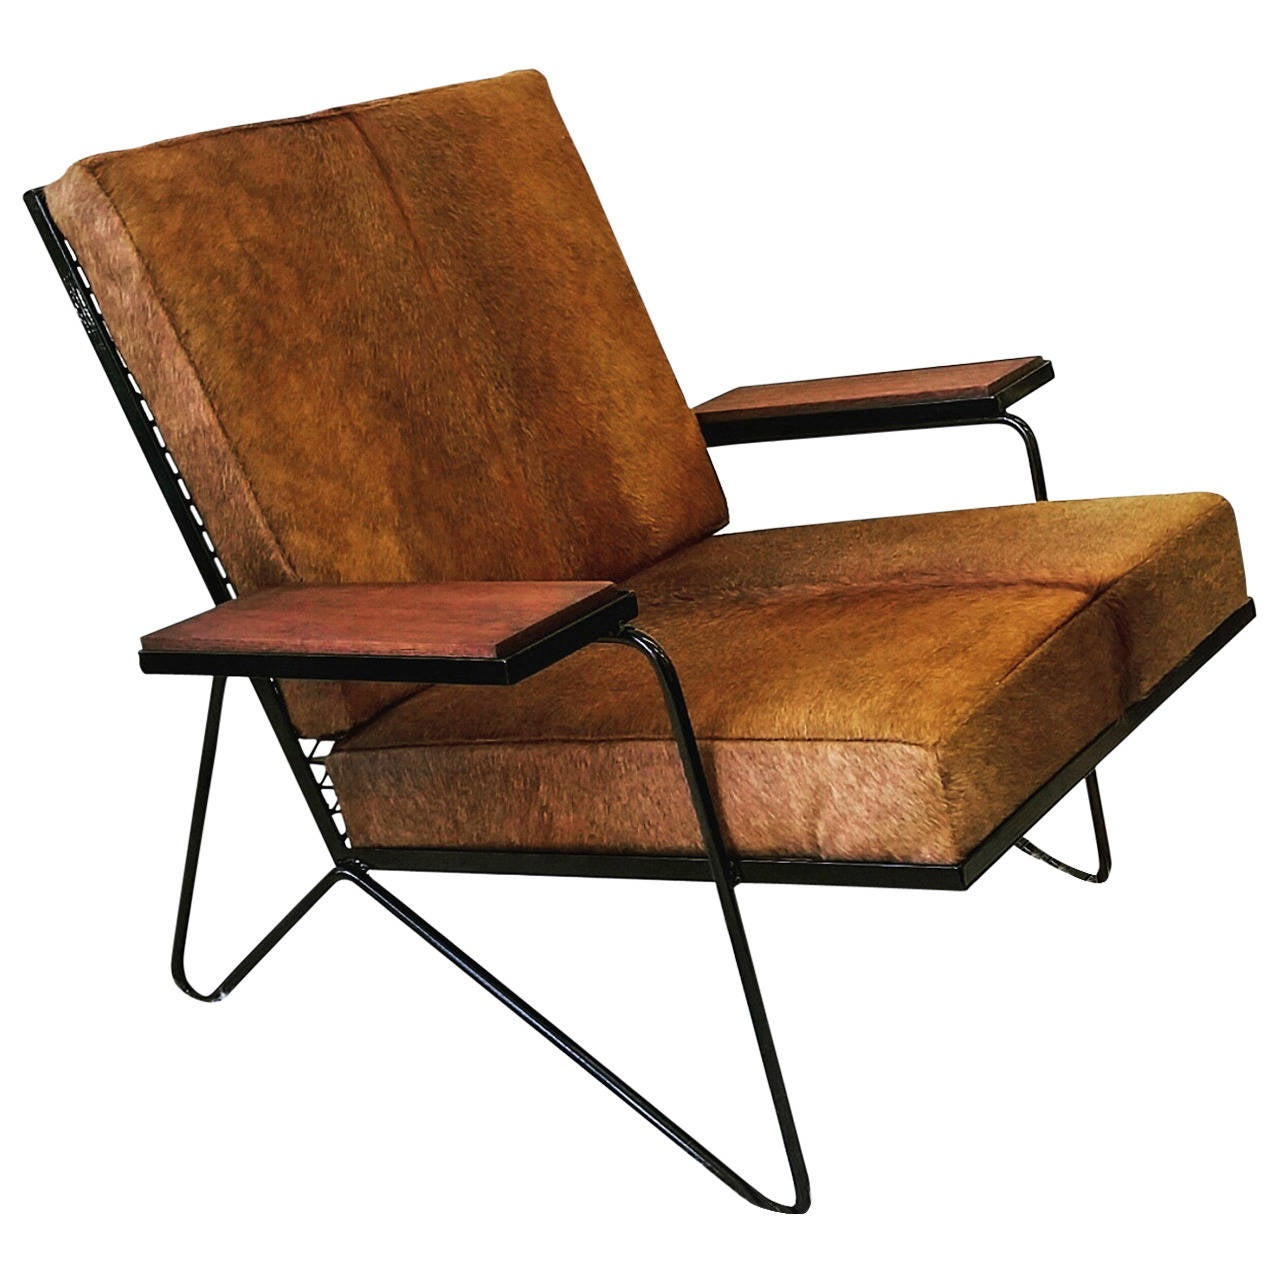 cowhide office chair uk amazon.ca slip covers wicker furniture